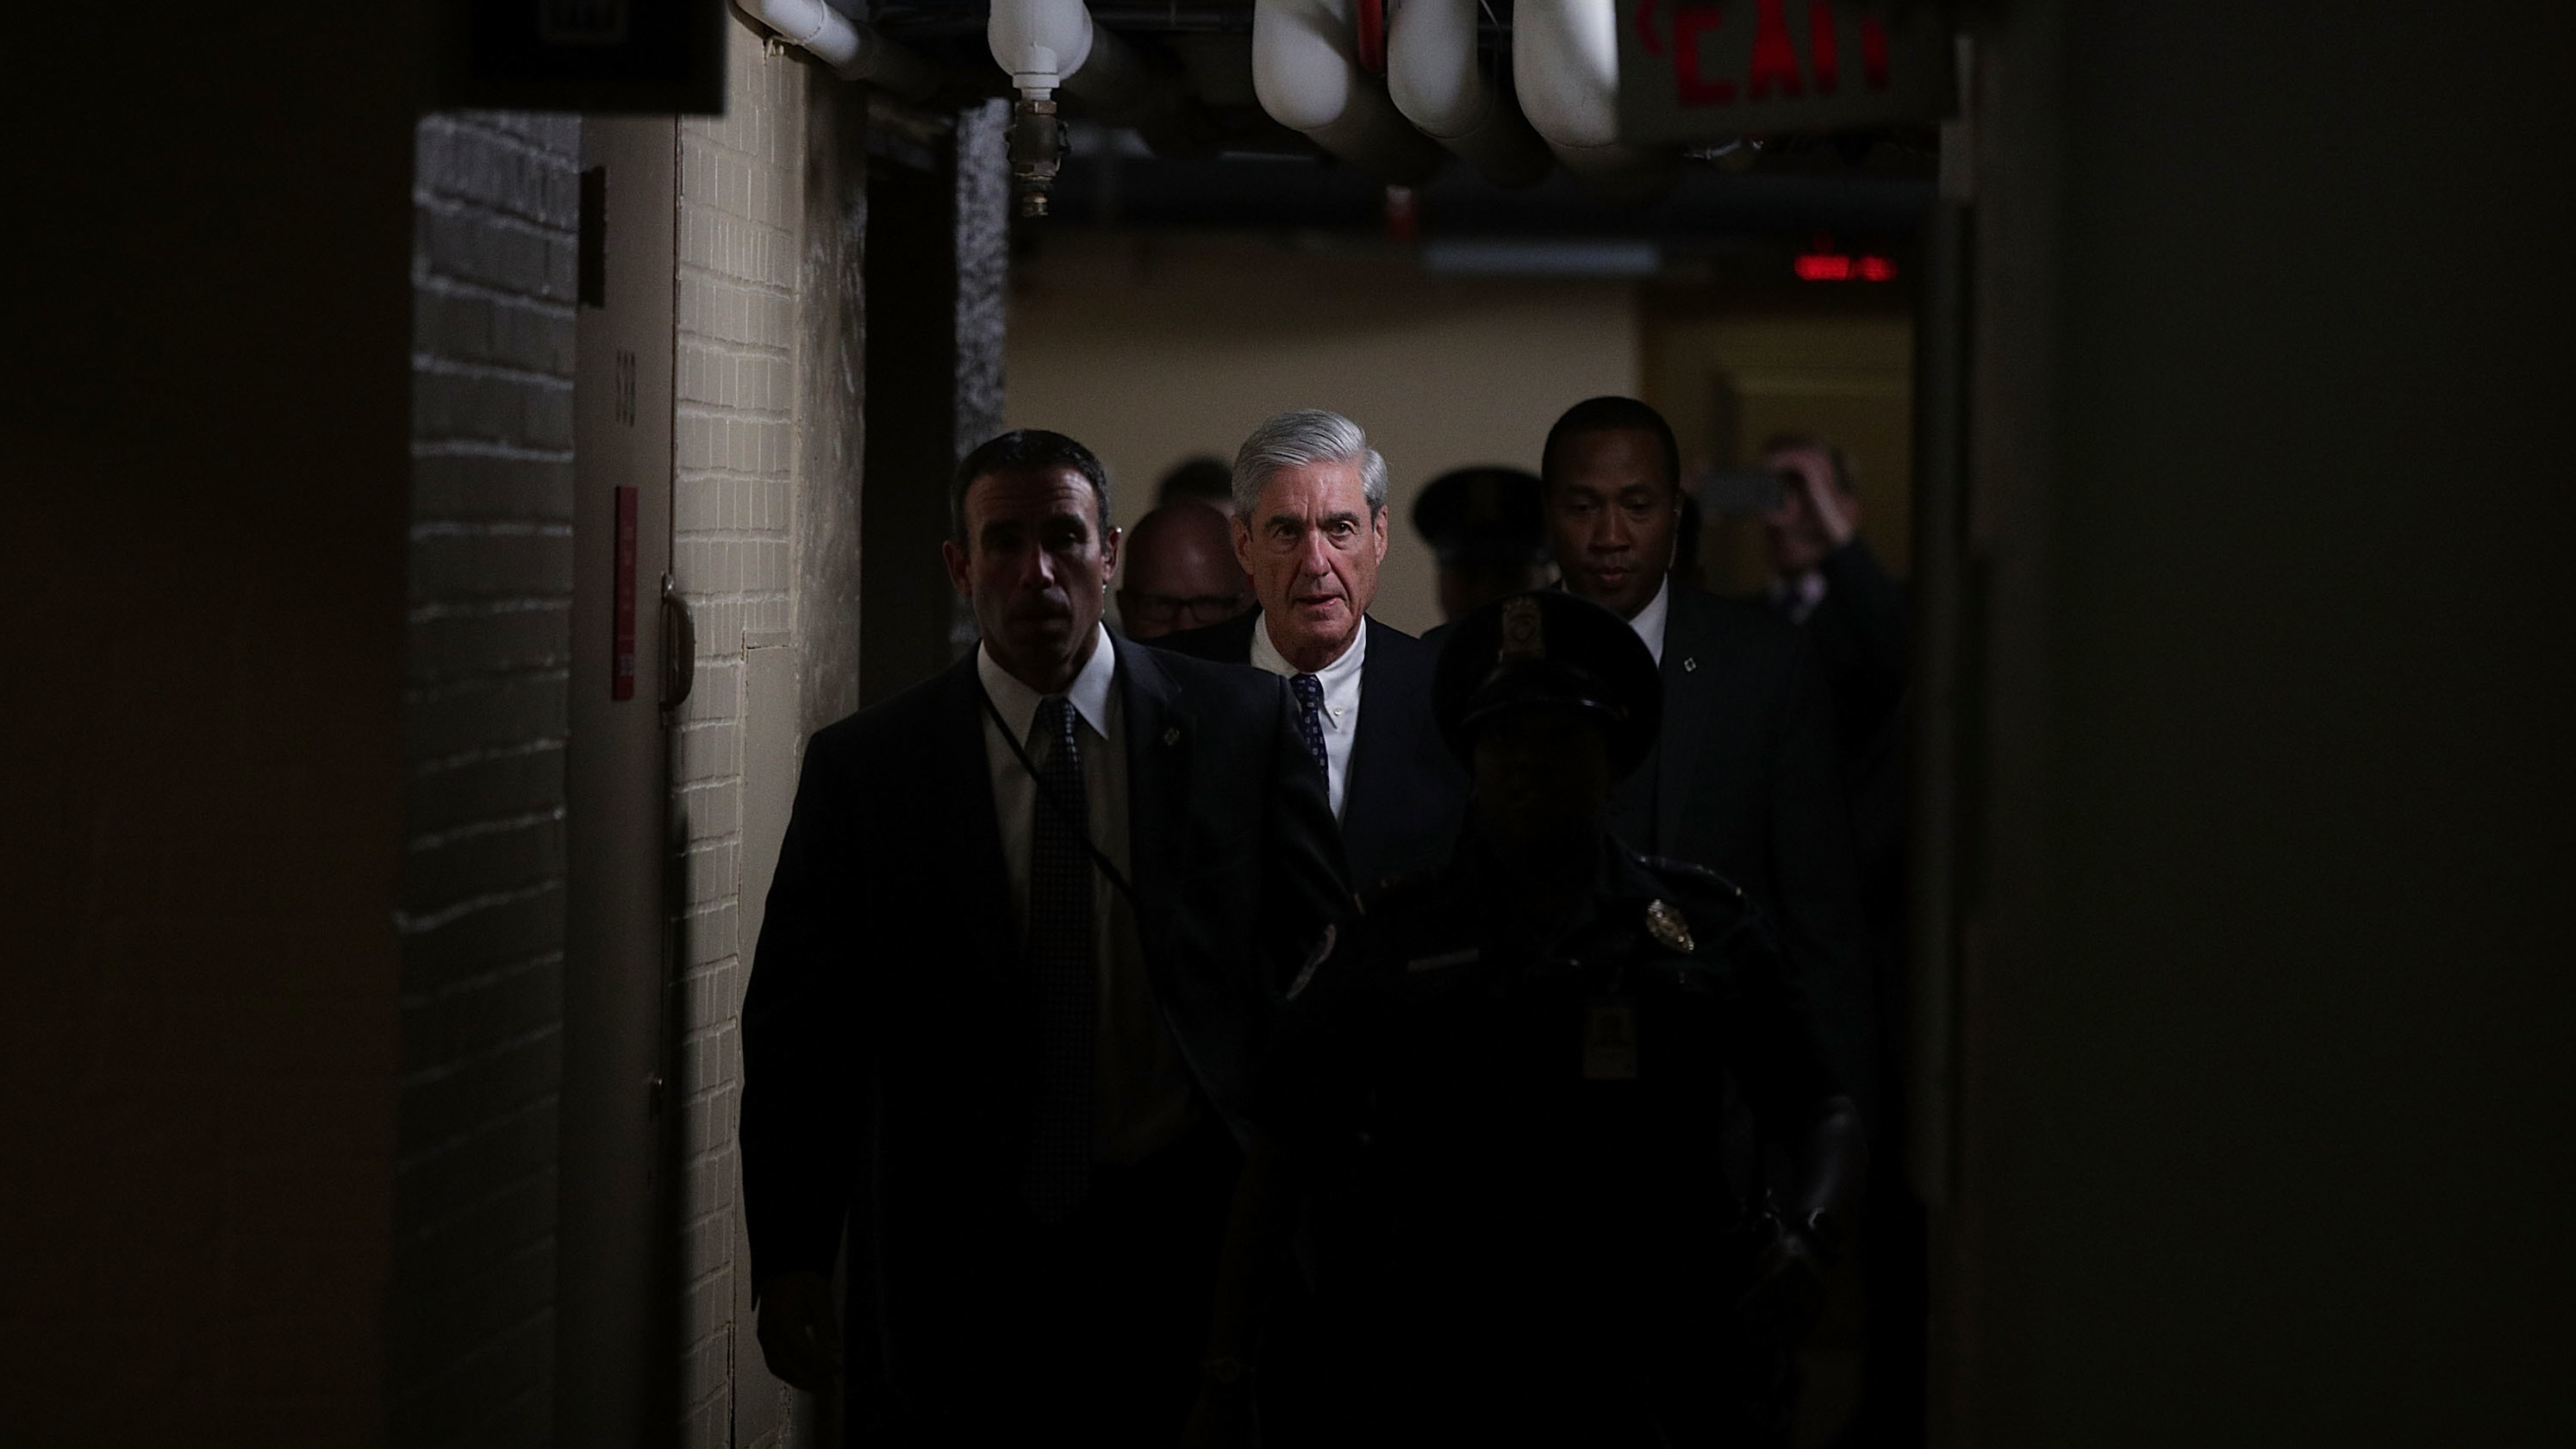 Mueller removed Federal Bureau of Investigation  agent from Russian Federation  probe for anti-Trump texts